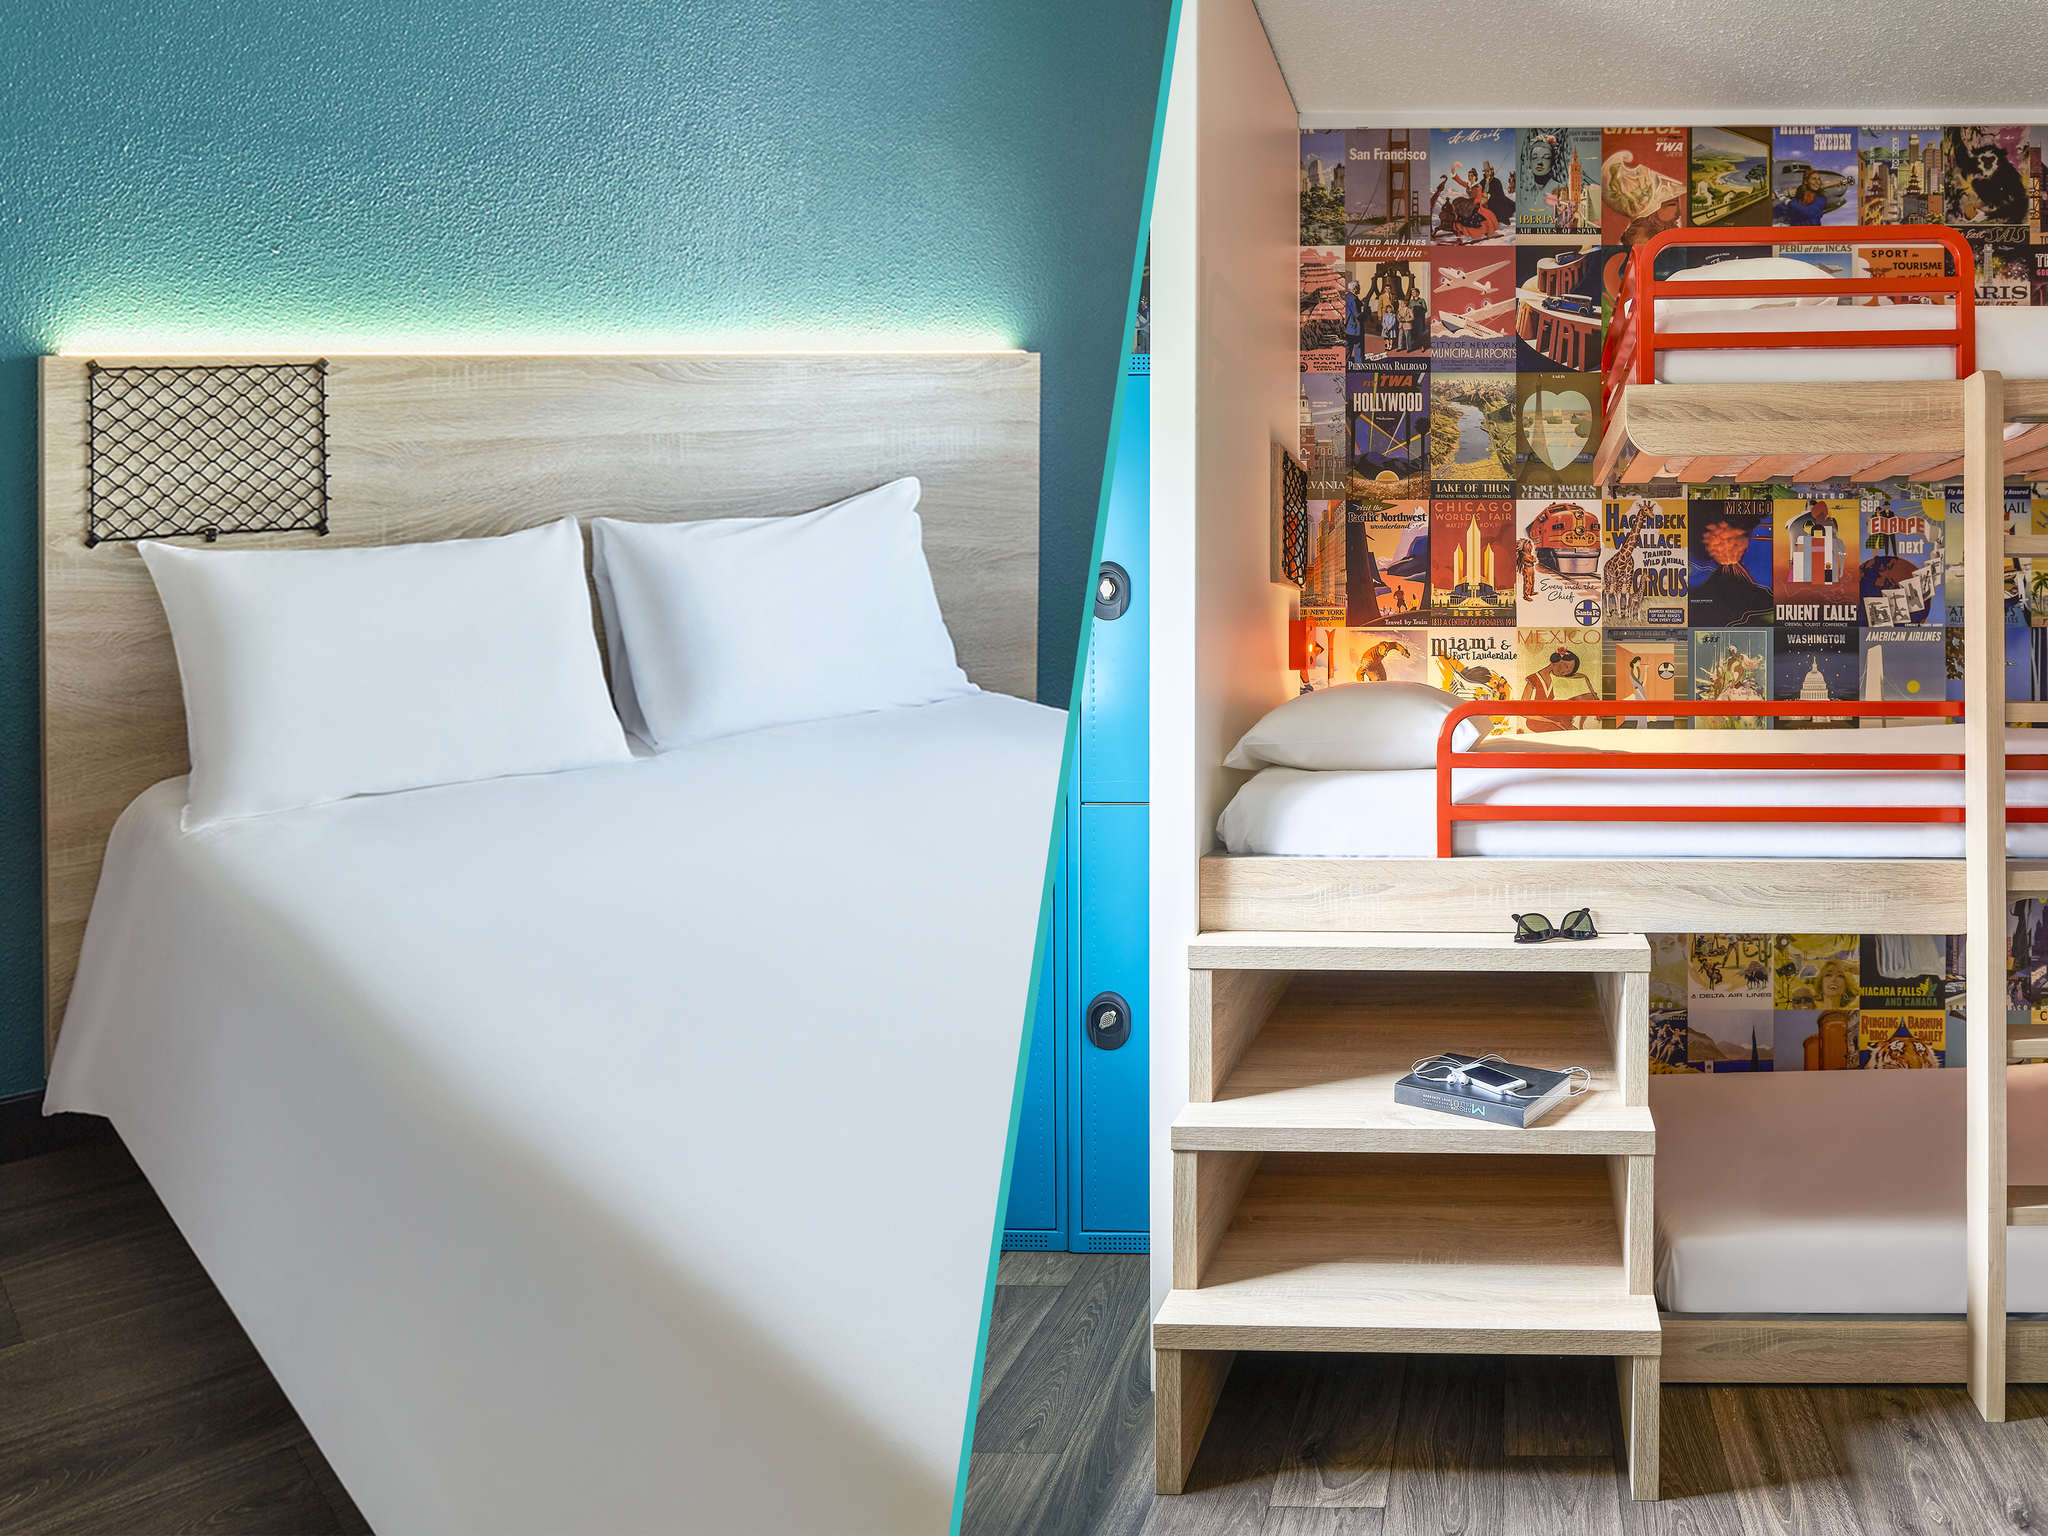 Hotel in paris hotelf1 paris porte de chatillon for Hotel paris x